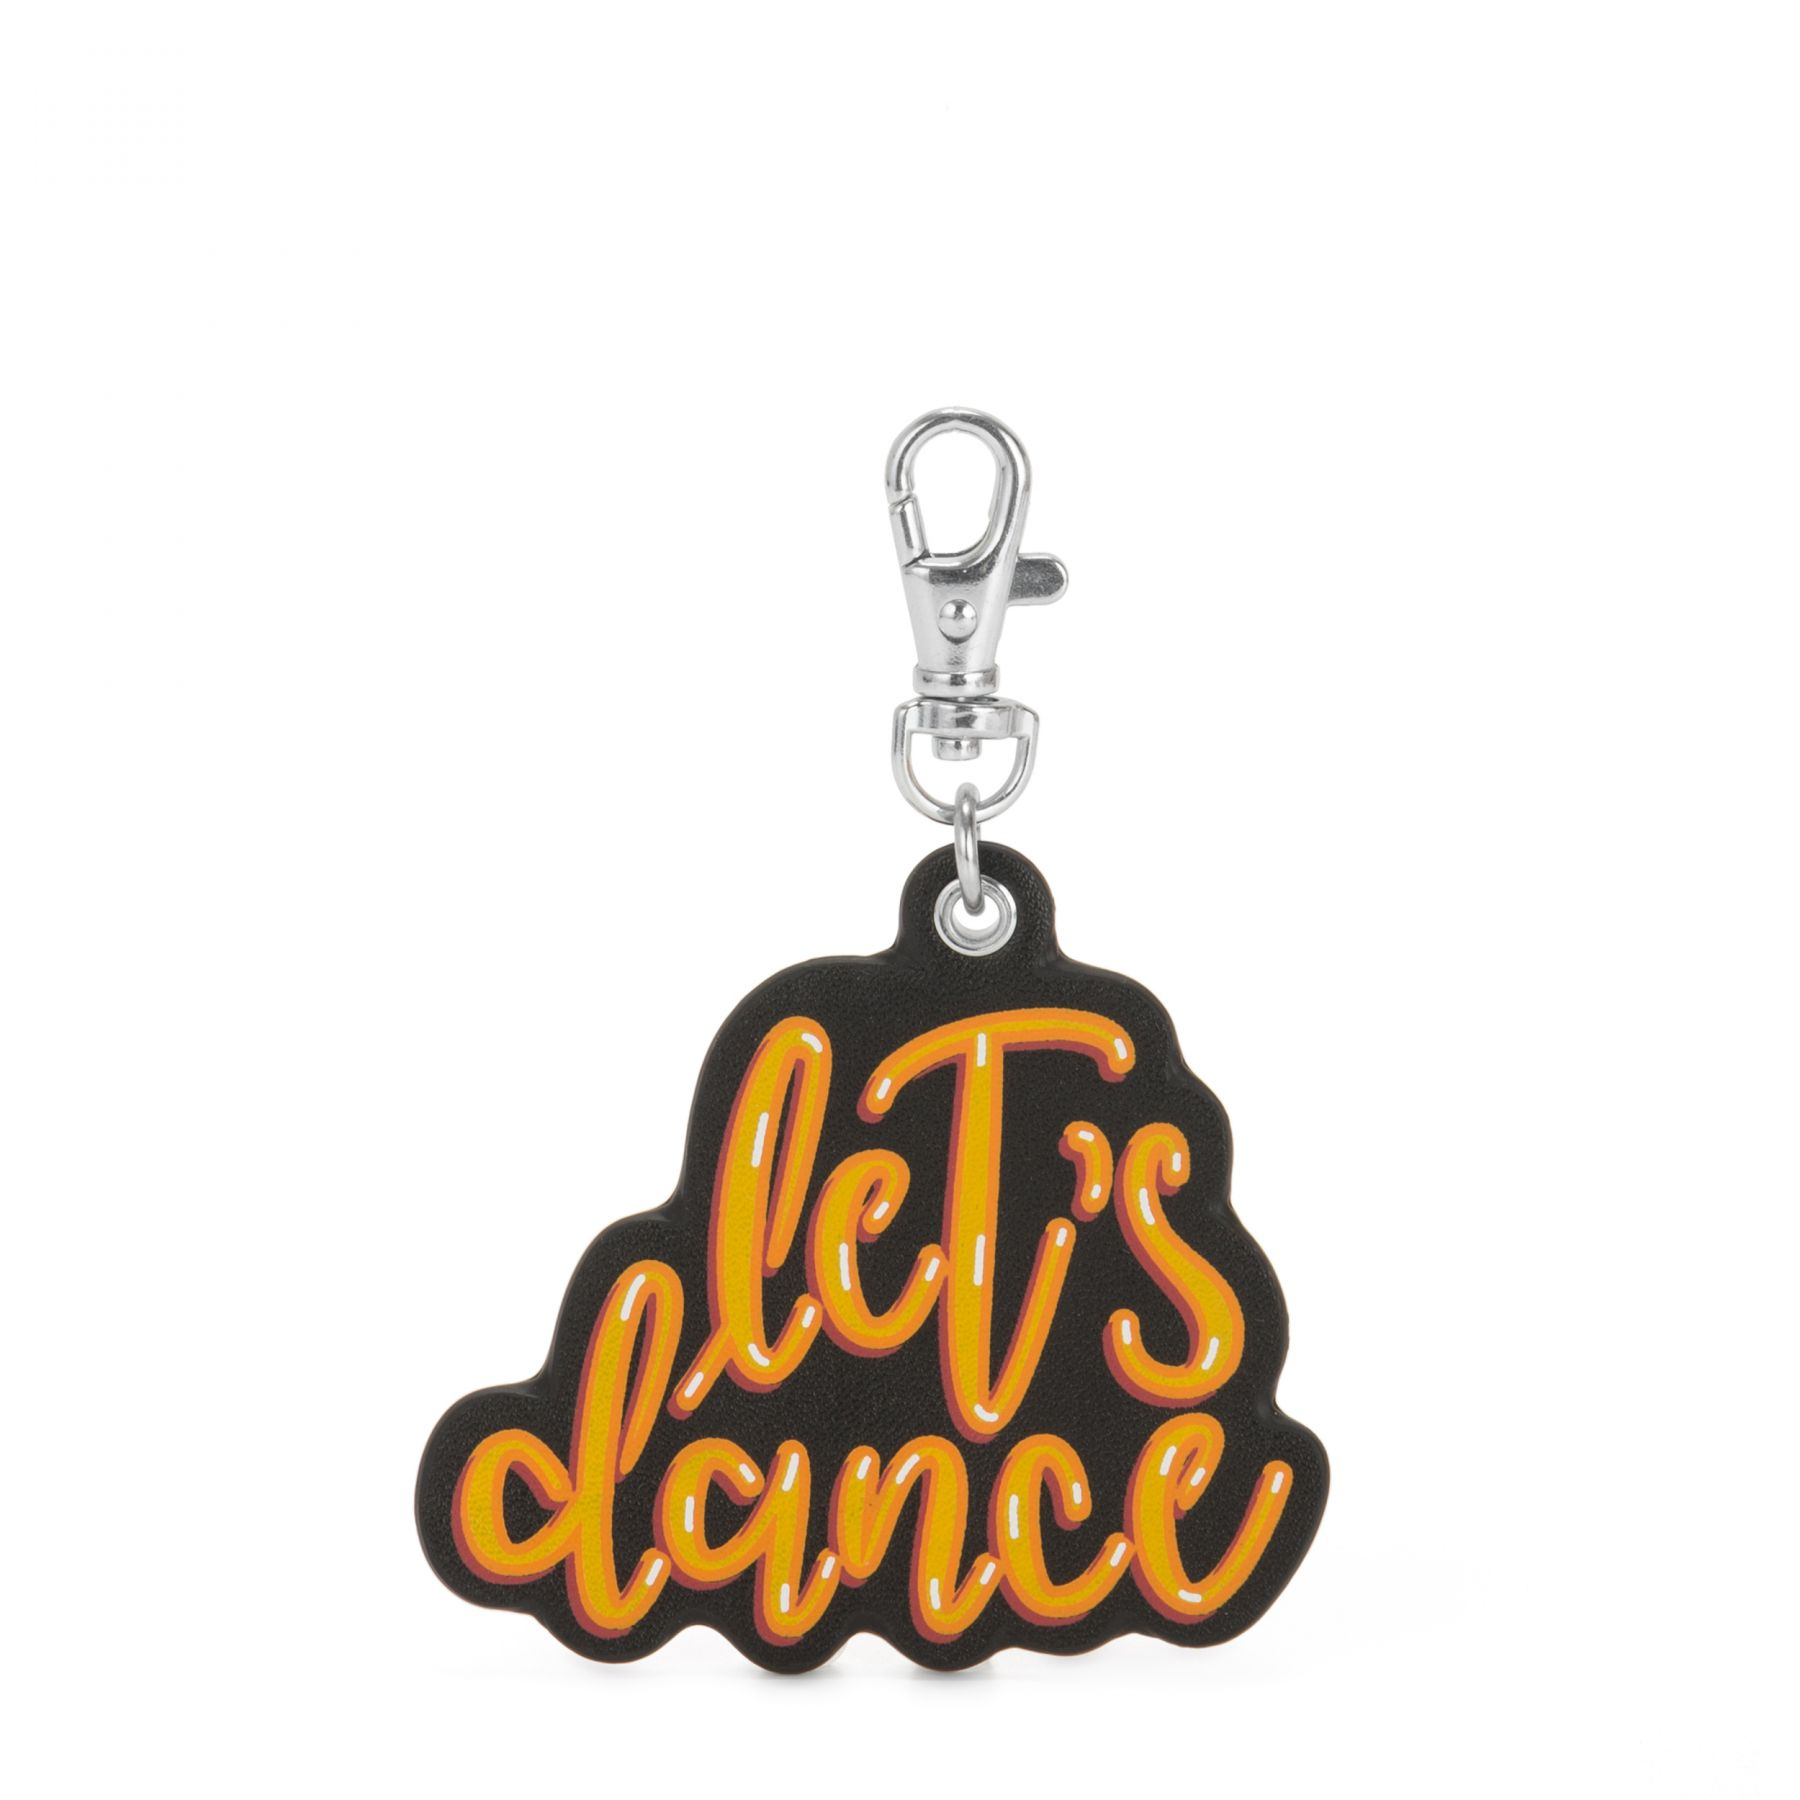 LET'S DANCE KH Latest Accessories by Kipling - Front view